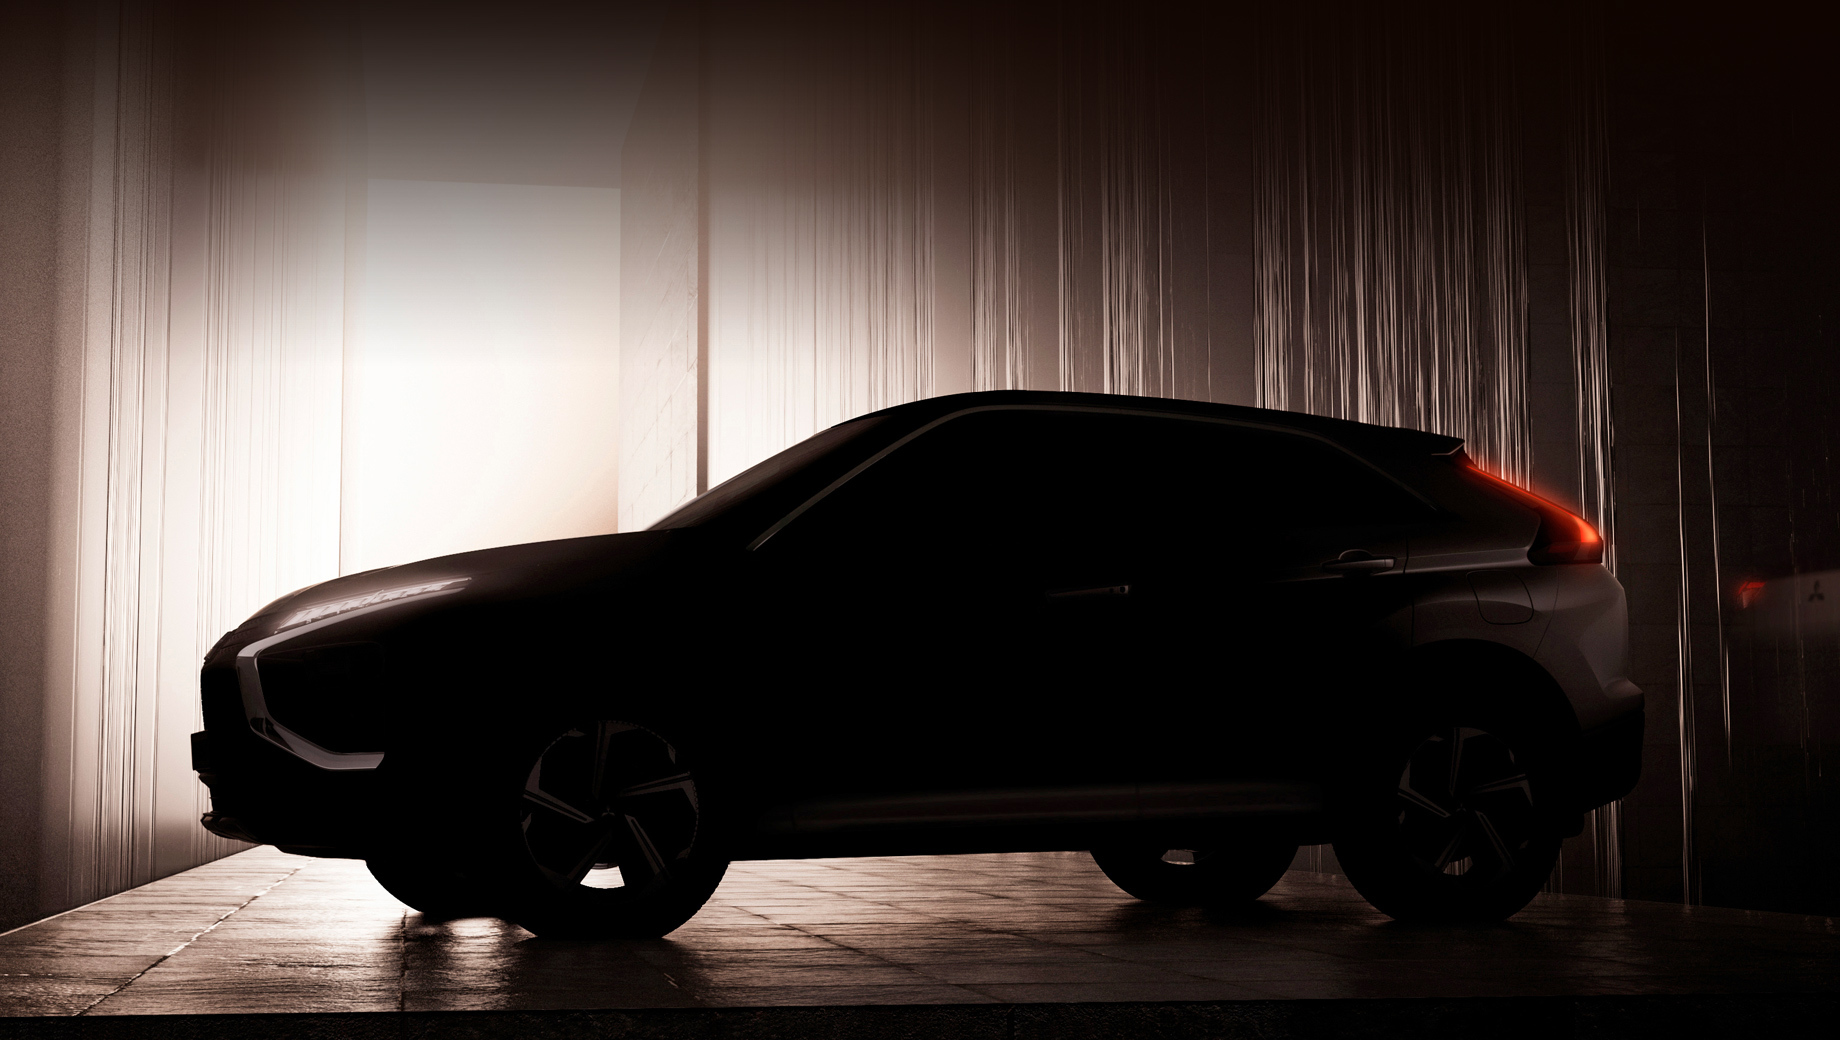 Mitsubishi Motors may be withdrawing from Europe now, but in the United States the company apparently feels well enough to be refreshing its entire lineup heading into next year. One of the highlights comes in the form of the 2021 Eclipse Cross, which you can see on its first official photo.